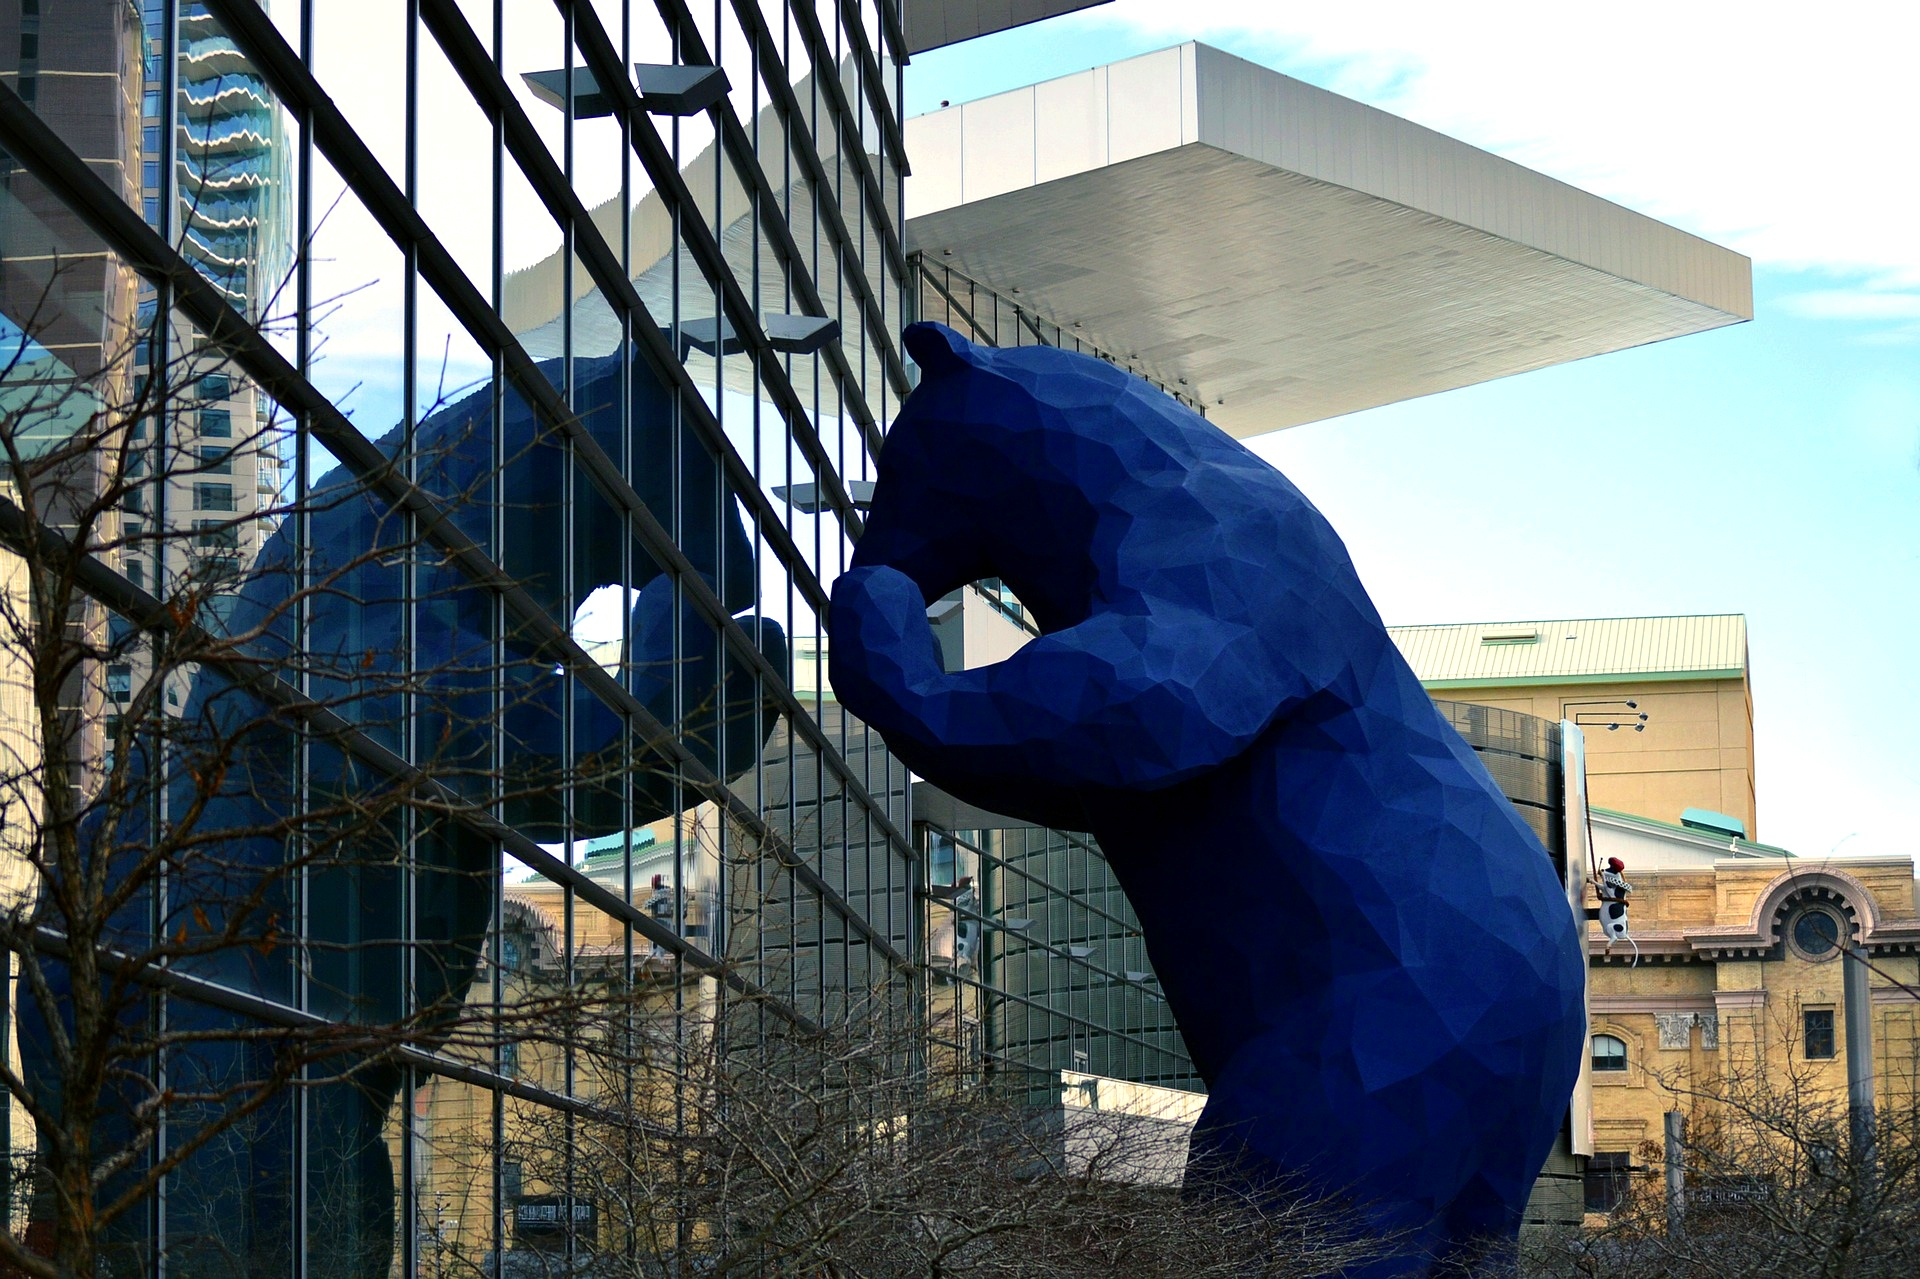 This big blue bear can be found peeking inside The Colorado Convention Center on 14th Street (Image:  Pixabay )